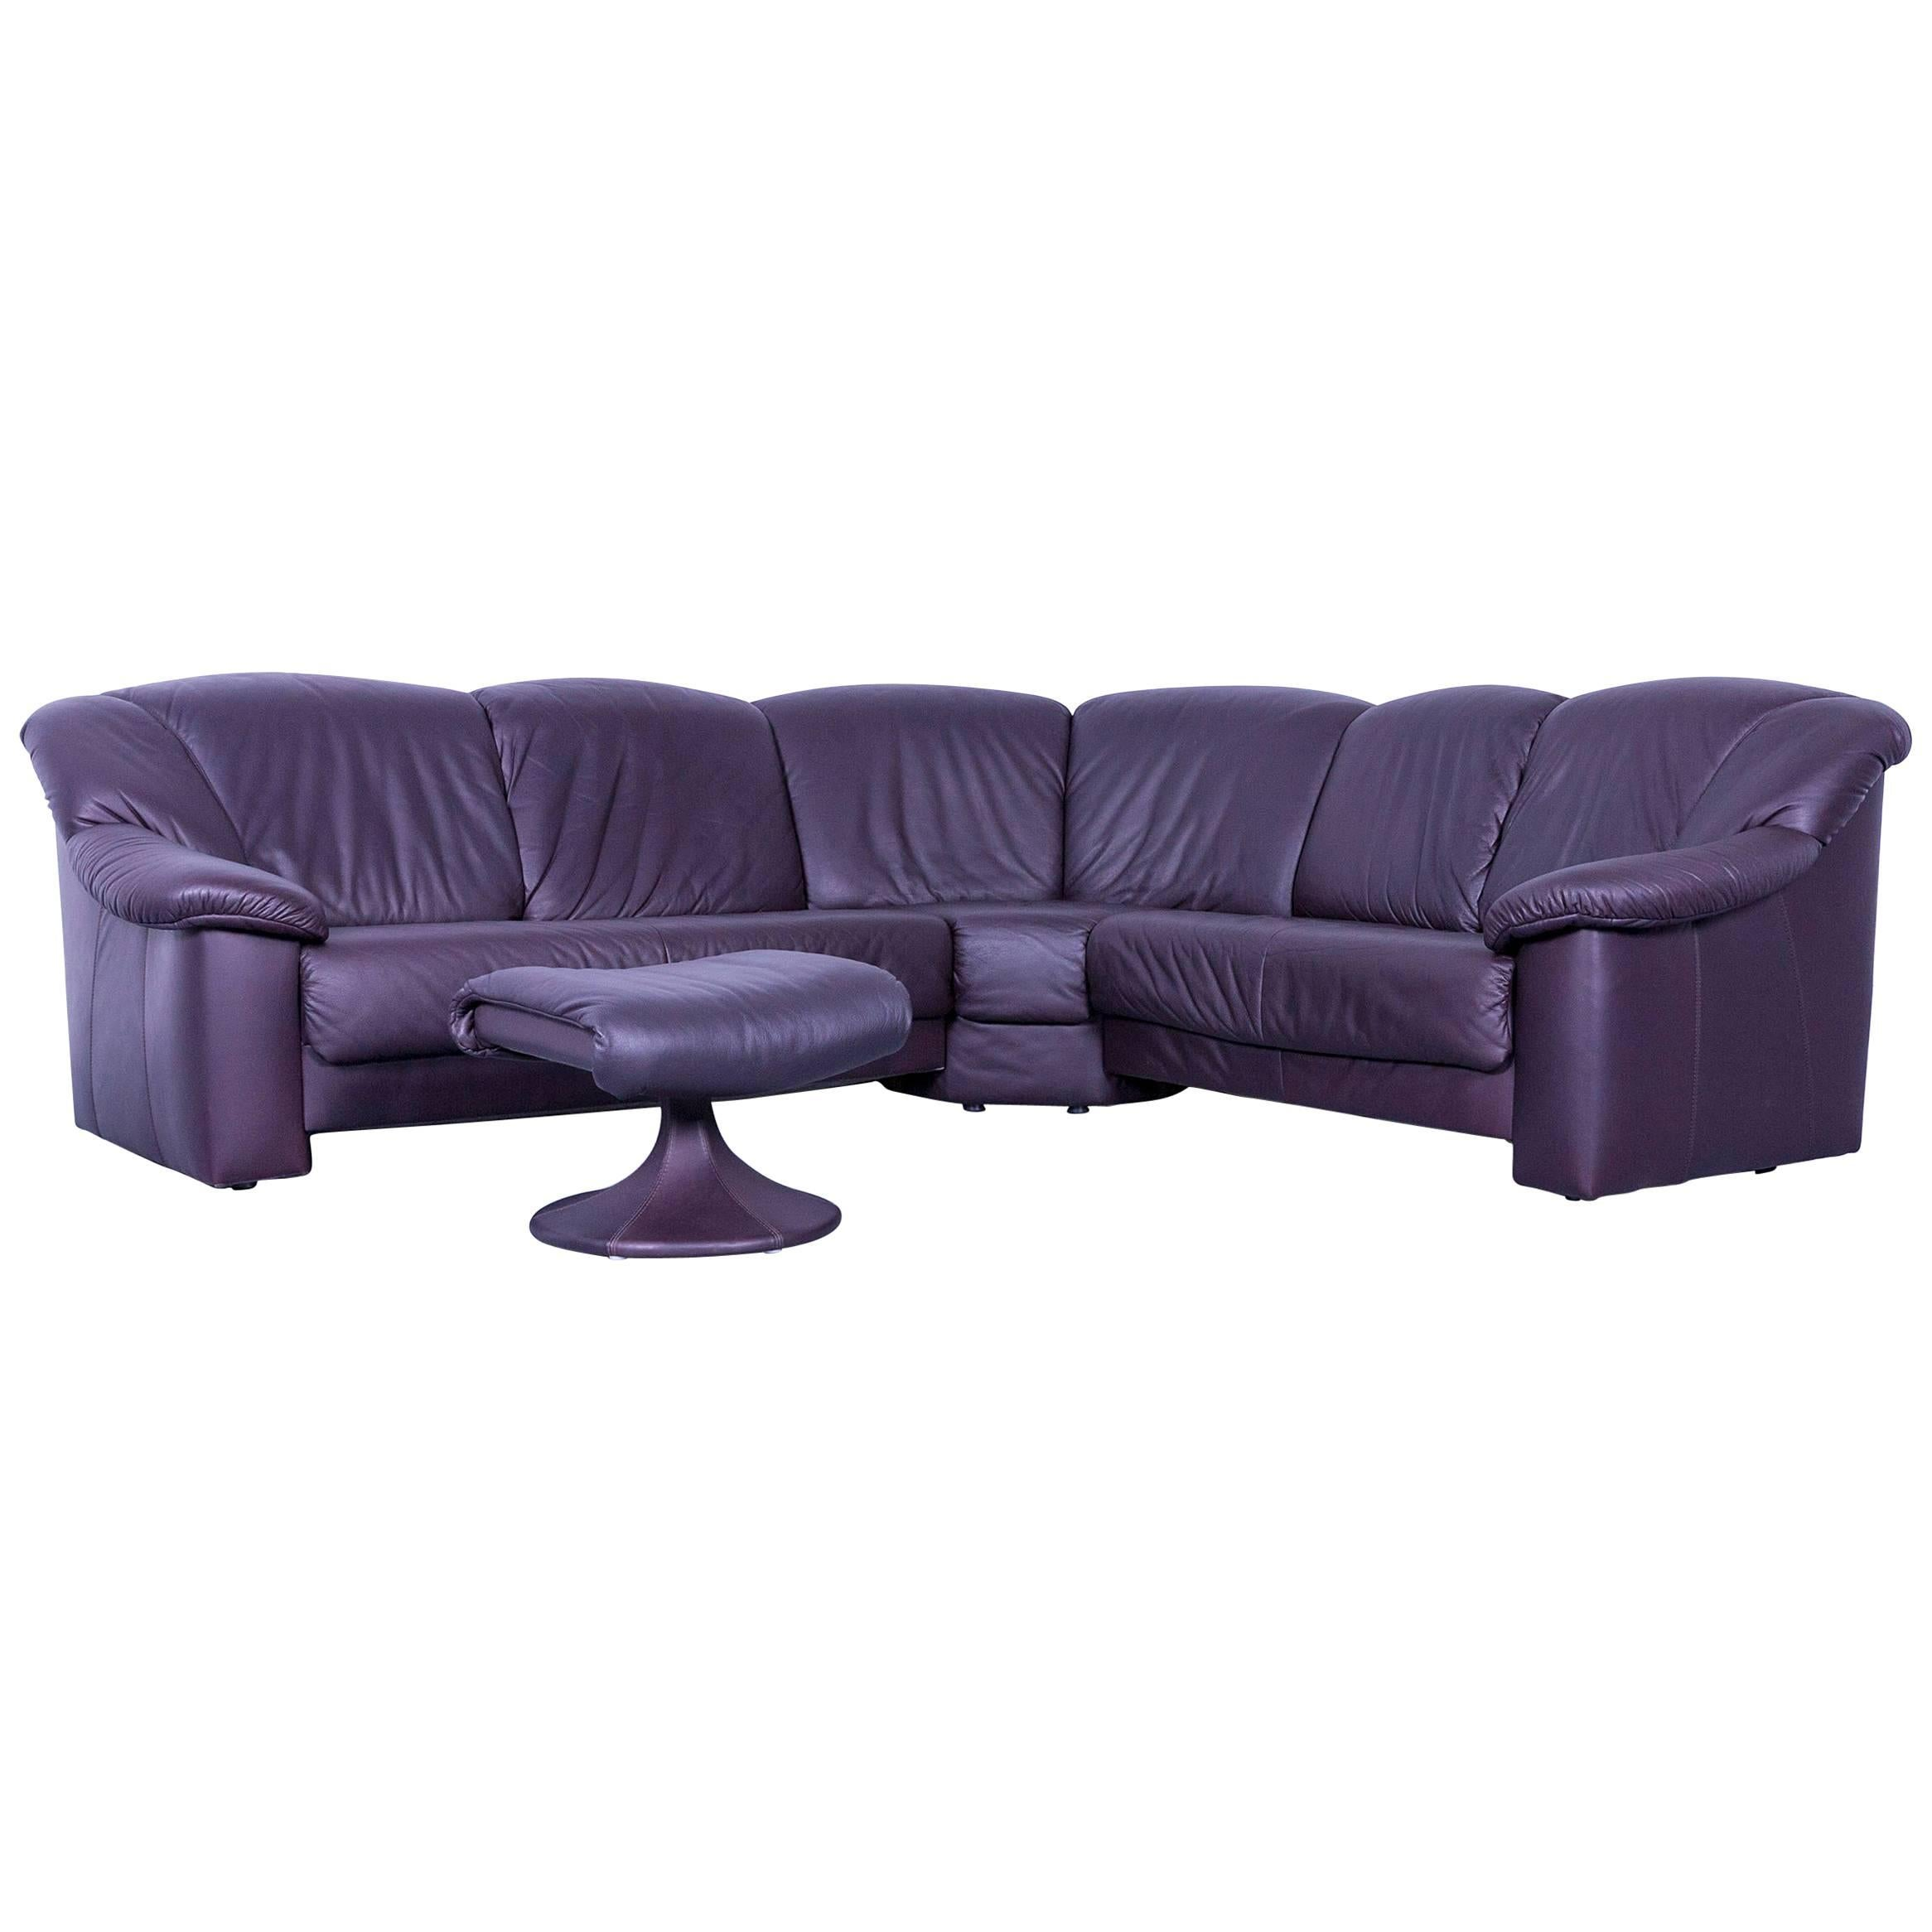 Musterring Designer Purple Leather Corner Sofa Set And Foot Rest